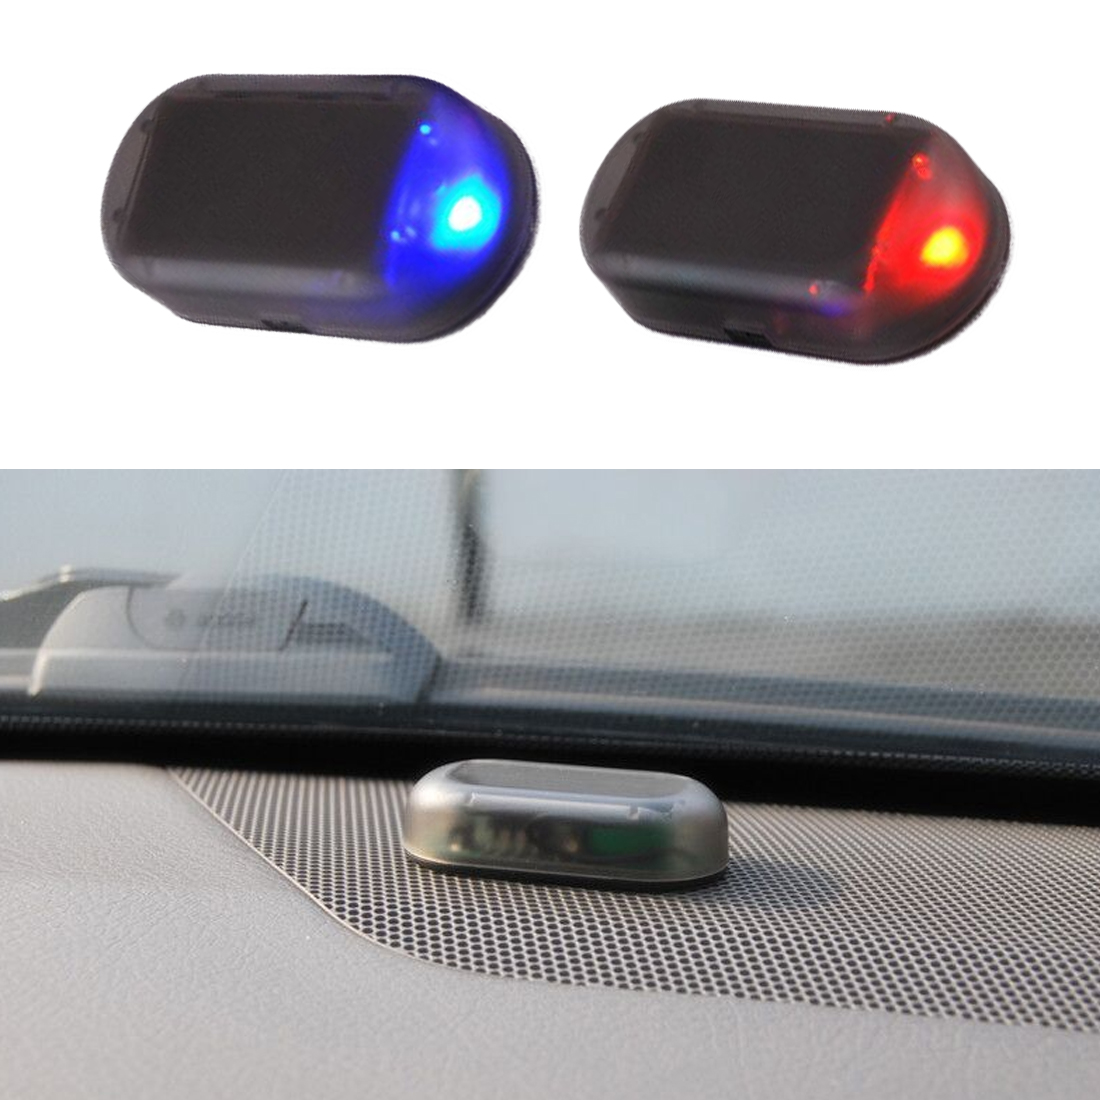 1PCS Universal Car Led Light Security System Warning Theft Flash Blinking Fake Solar Car Alarm LED Light цены